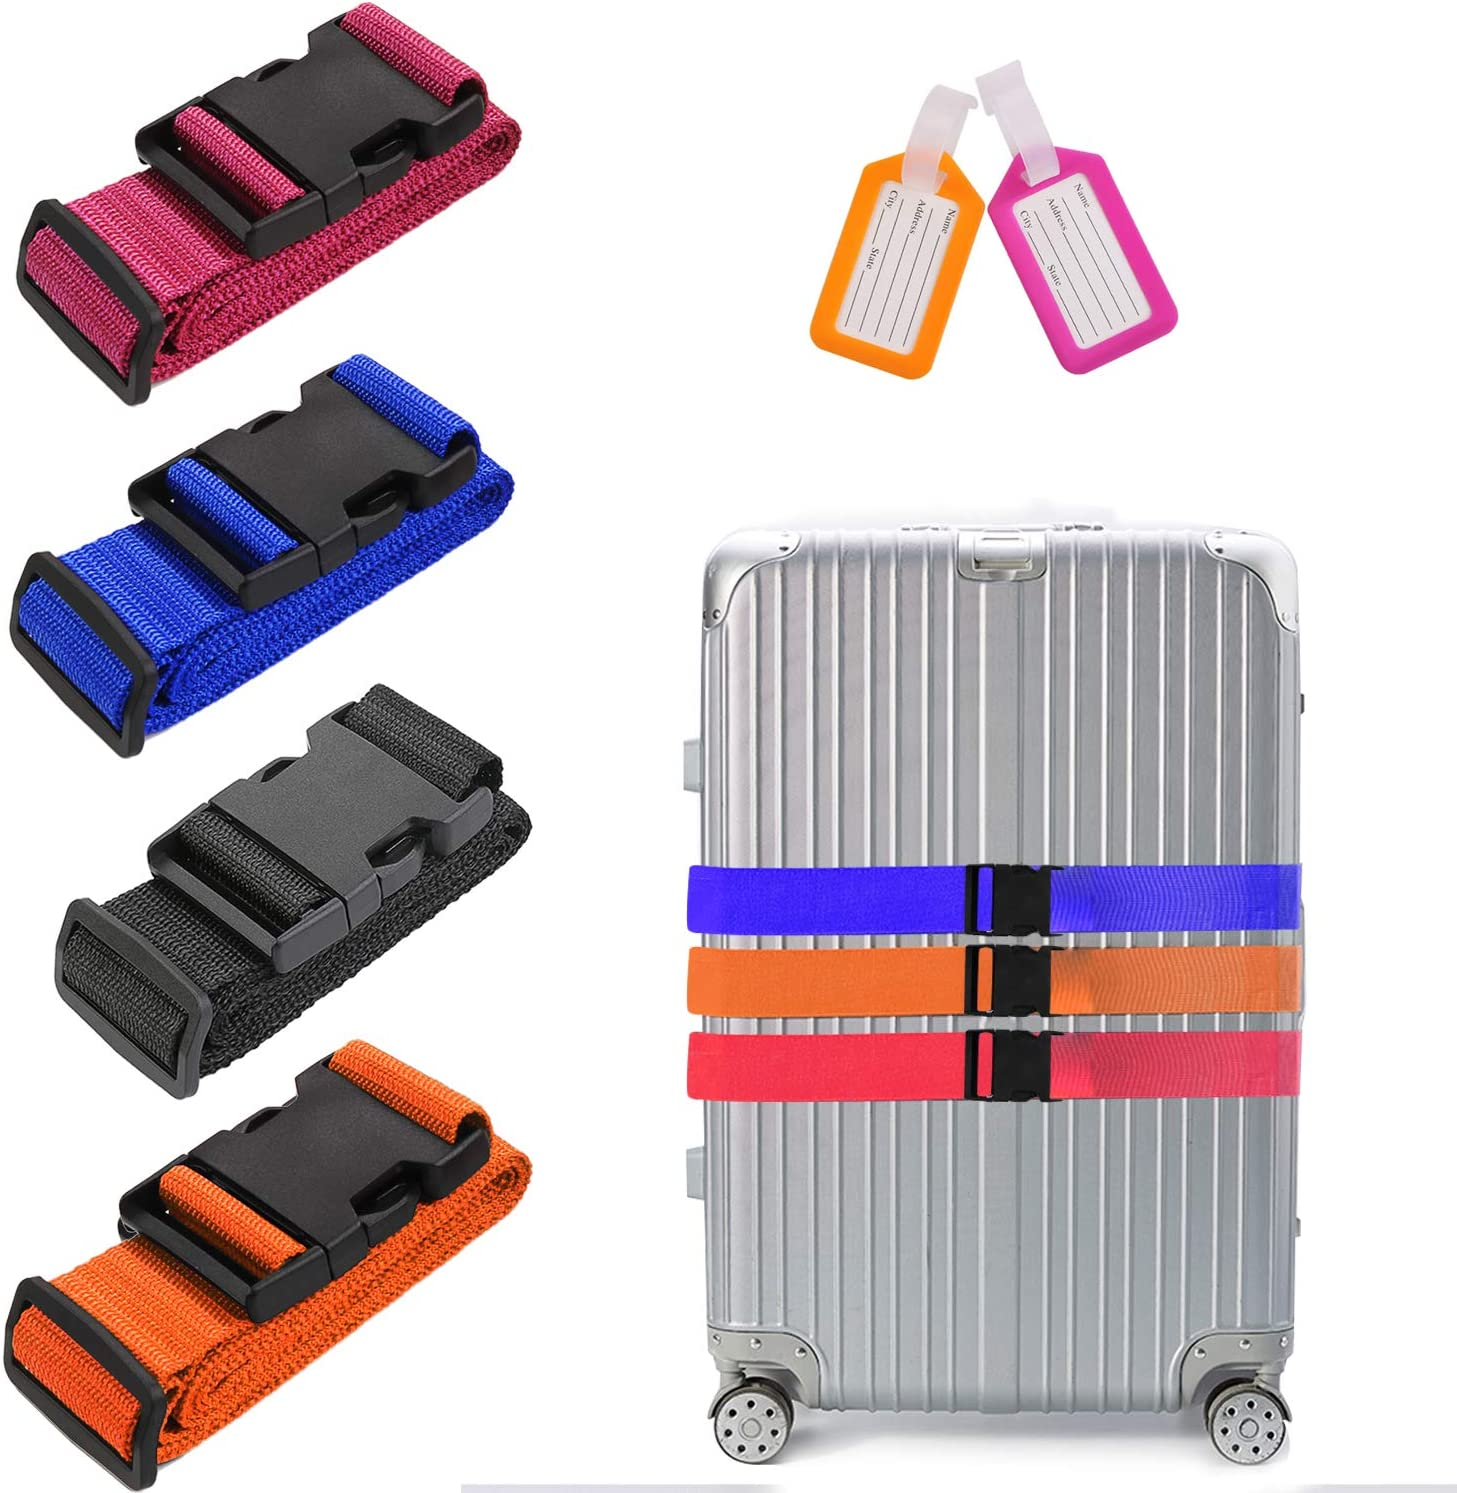 Yufenge Luggage Straps Suitcase Belts Adjustable Heavy Duty Long Cross Travel Accessories 4 Pack Multicolor jglstrapmultic